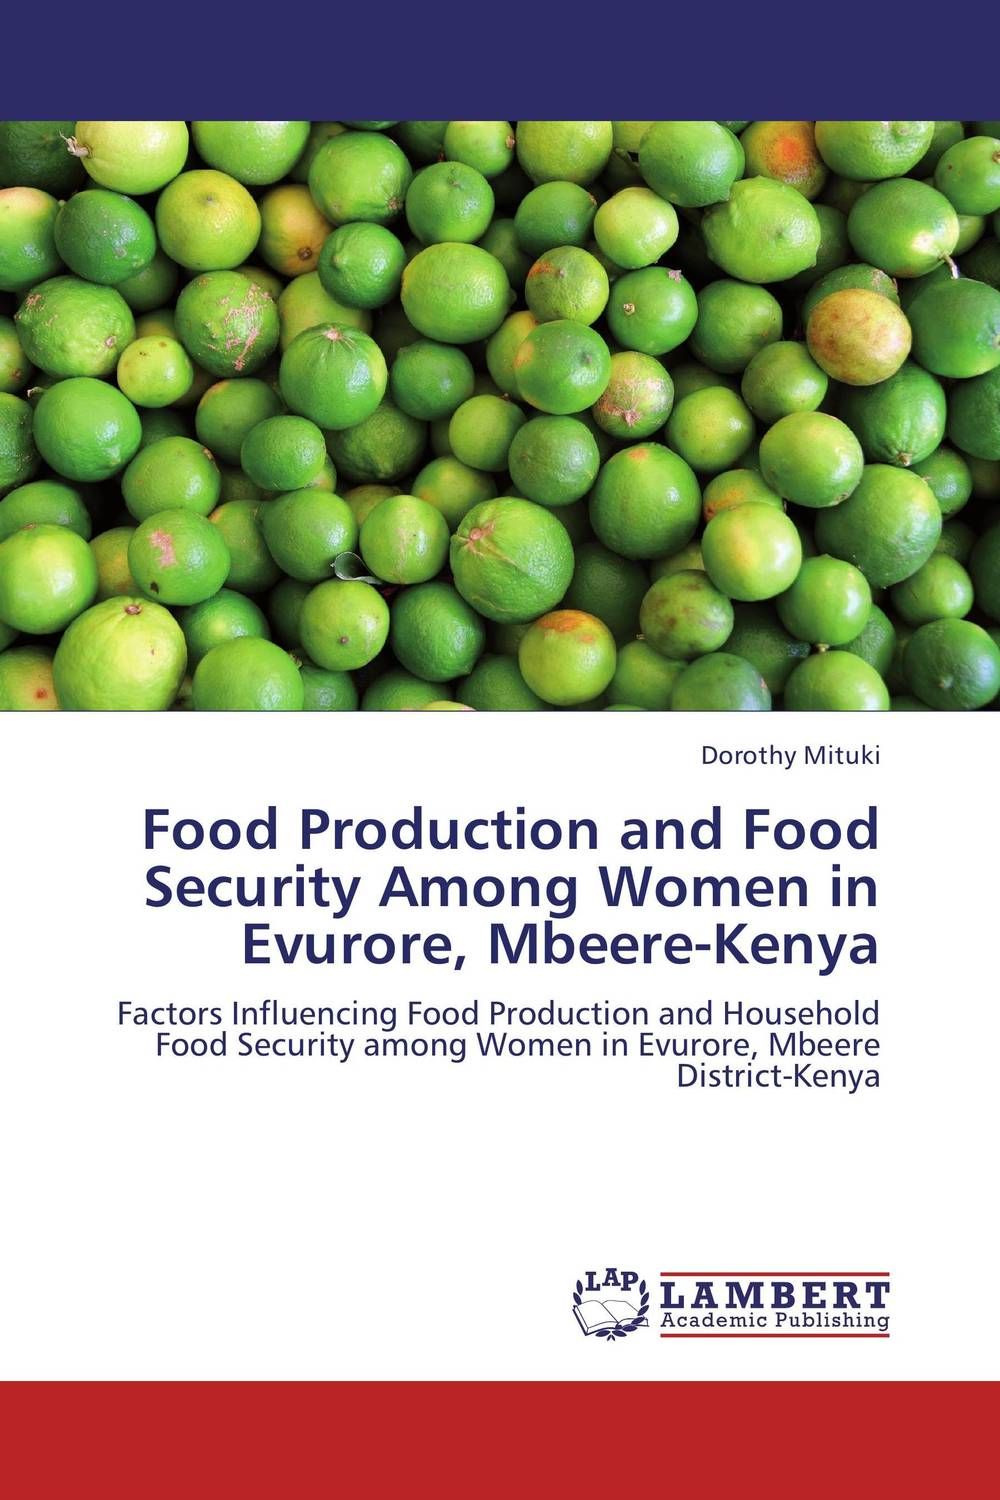 Food Production and Food Security Among Women in Evurore, Mbeere-Kenya agatha daniel and charles olungah women s indigenous knowledge in household food security